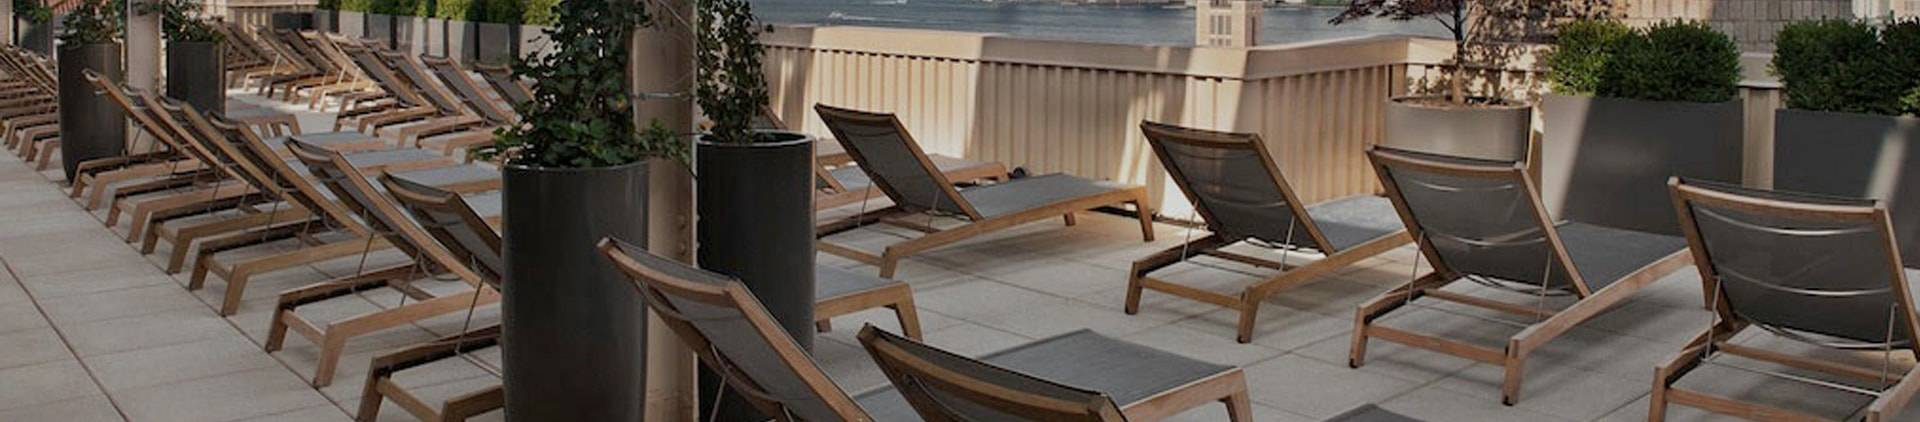 Commercial And Hospitality Outdoor Design To The Trade Authenteak